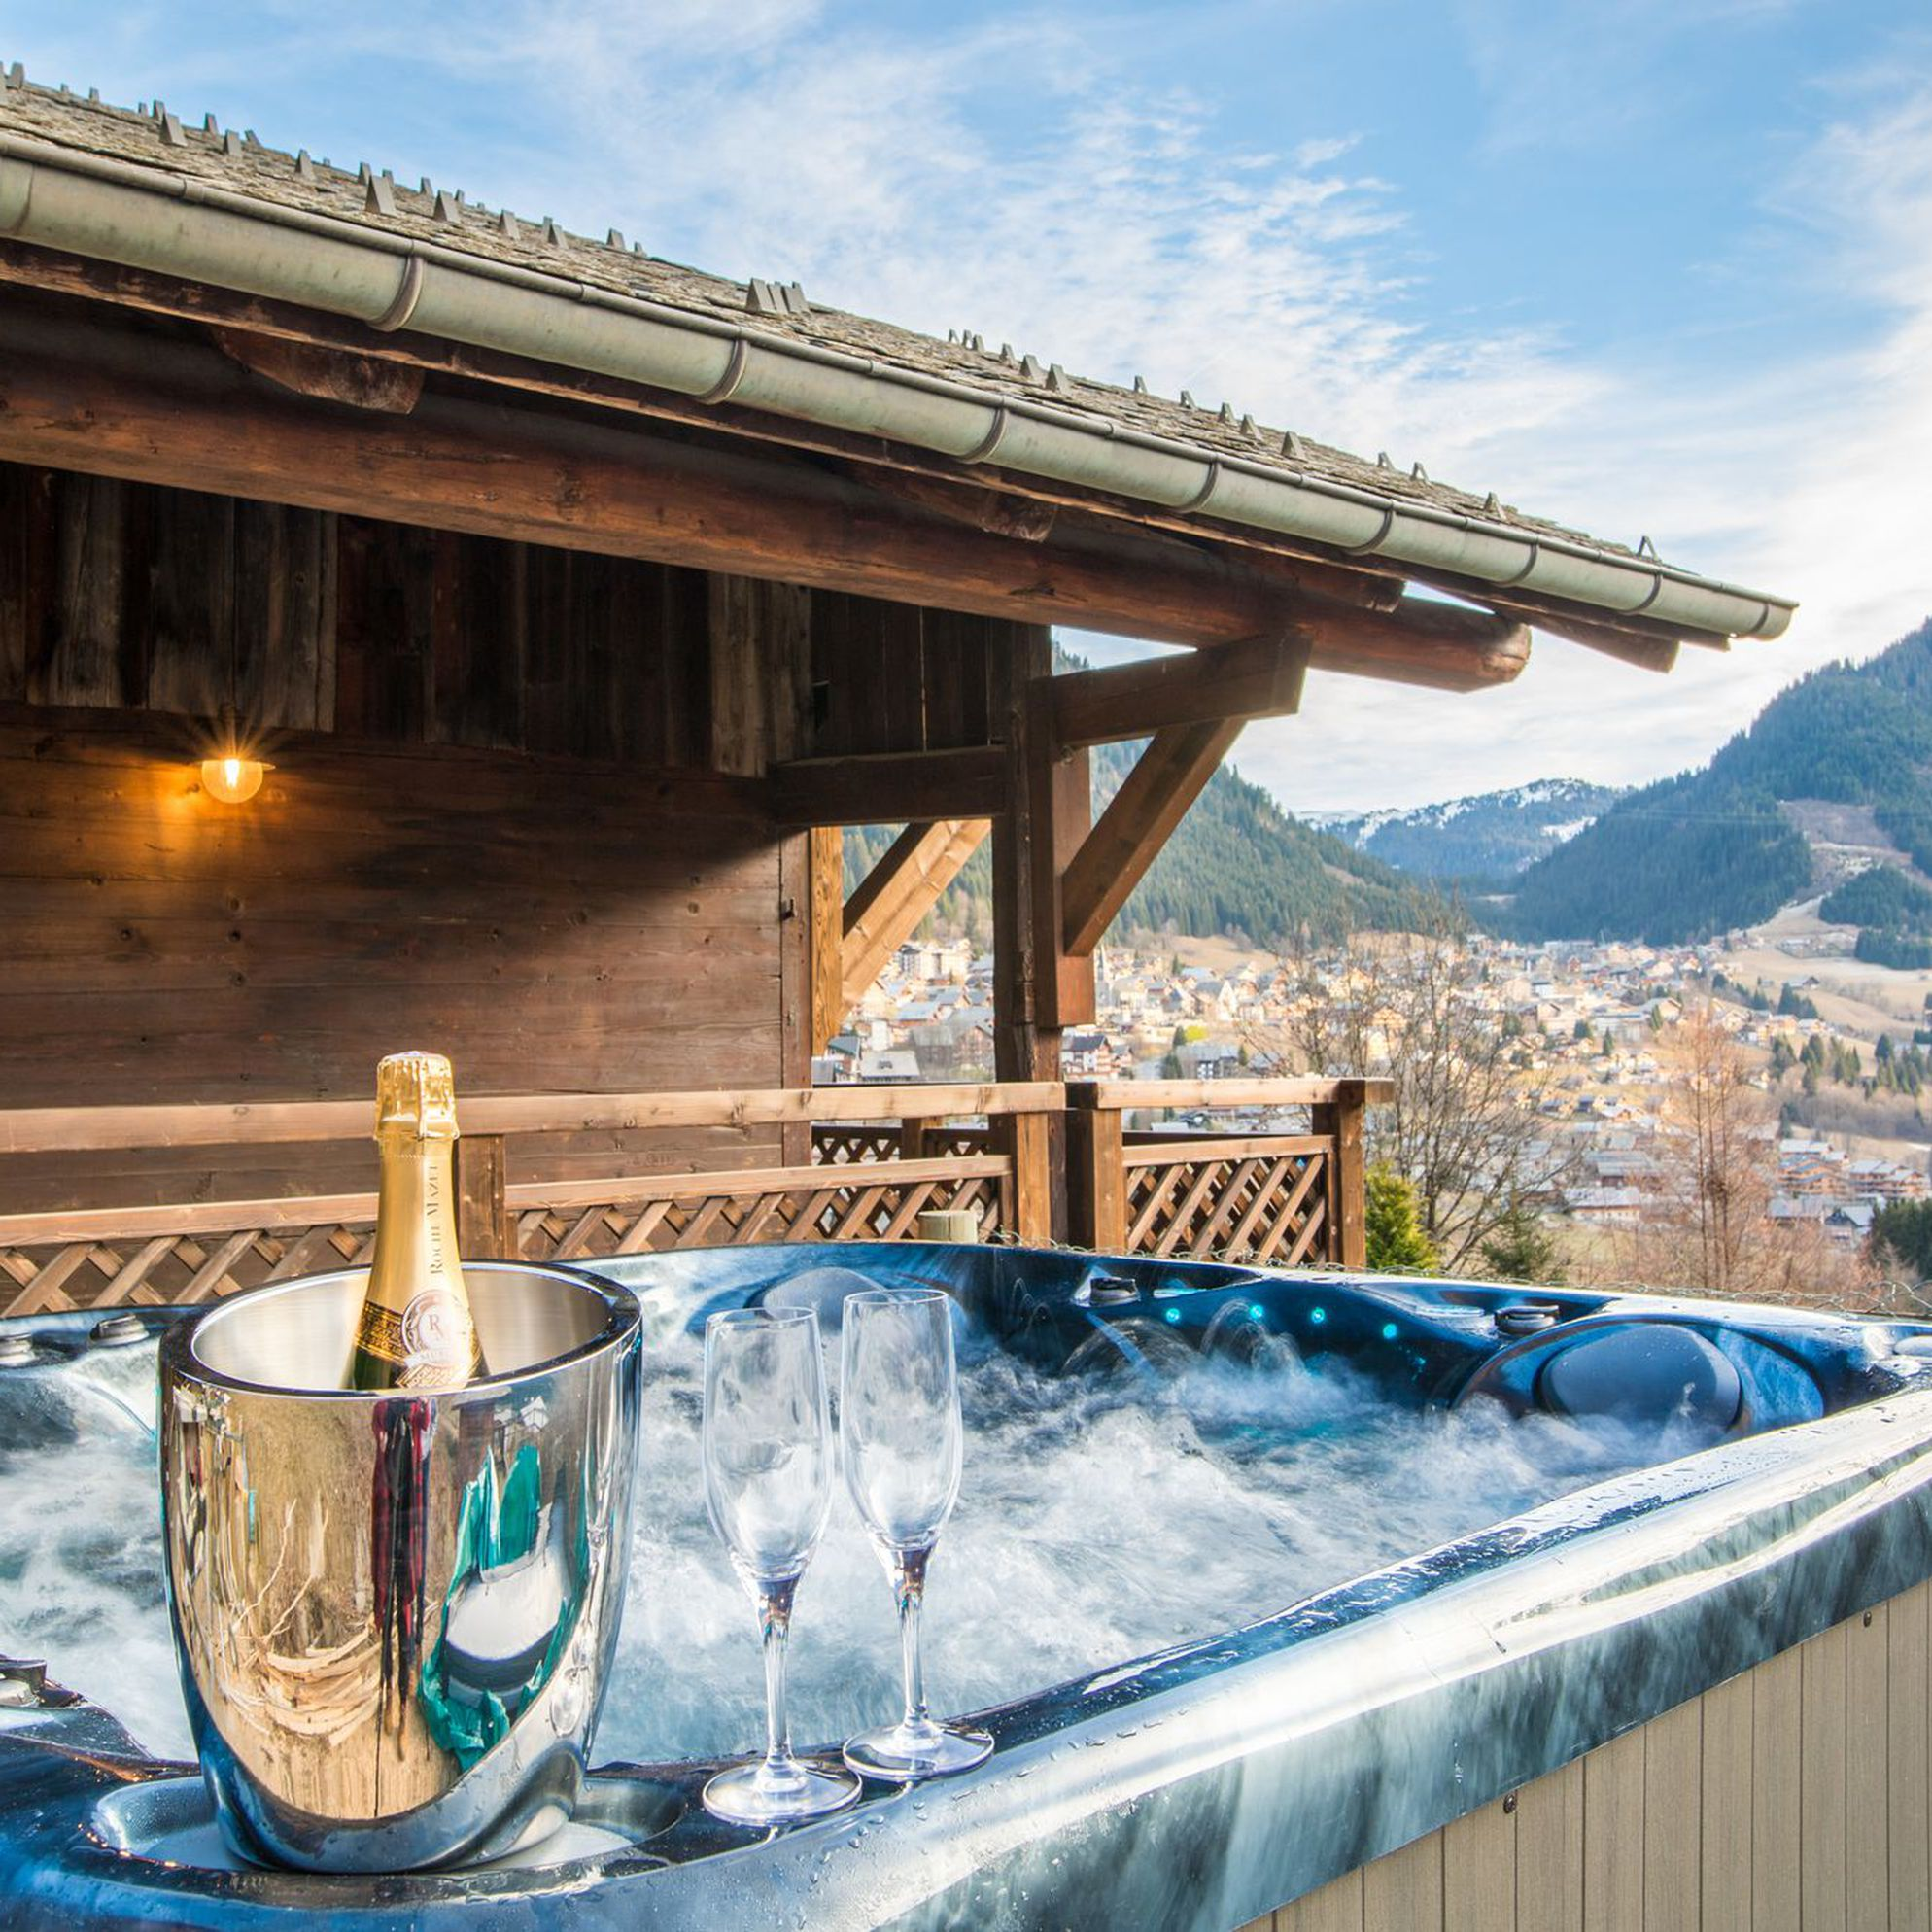 Hot tub holidays with a view